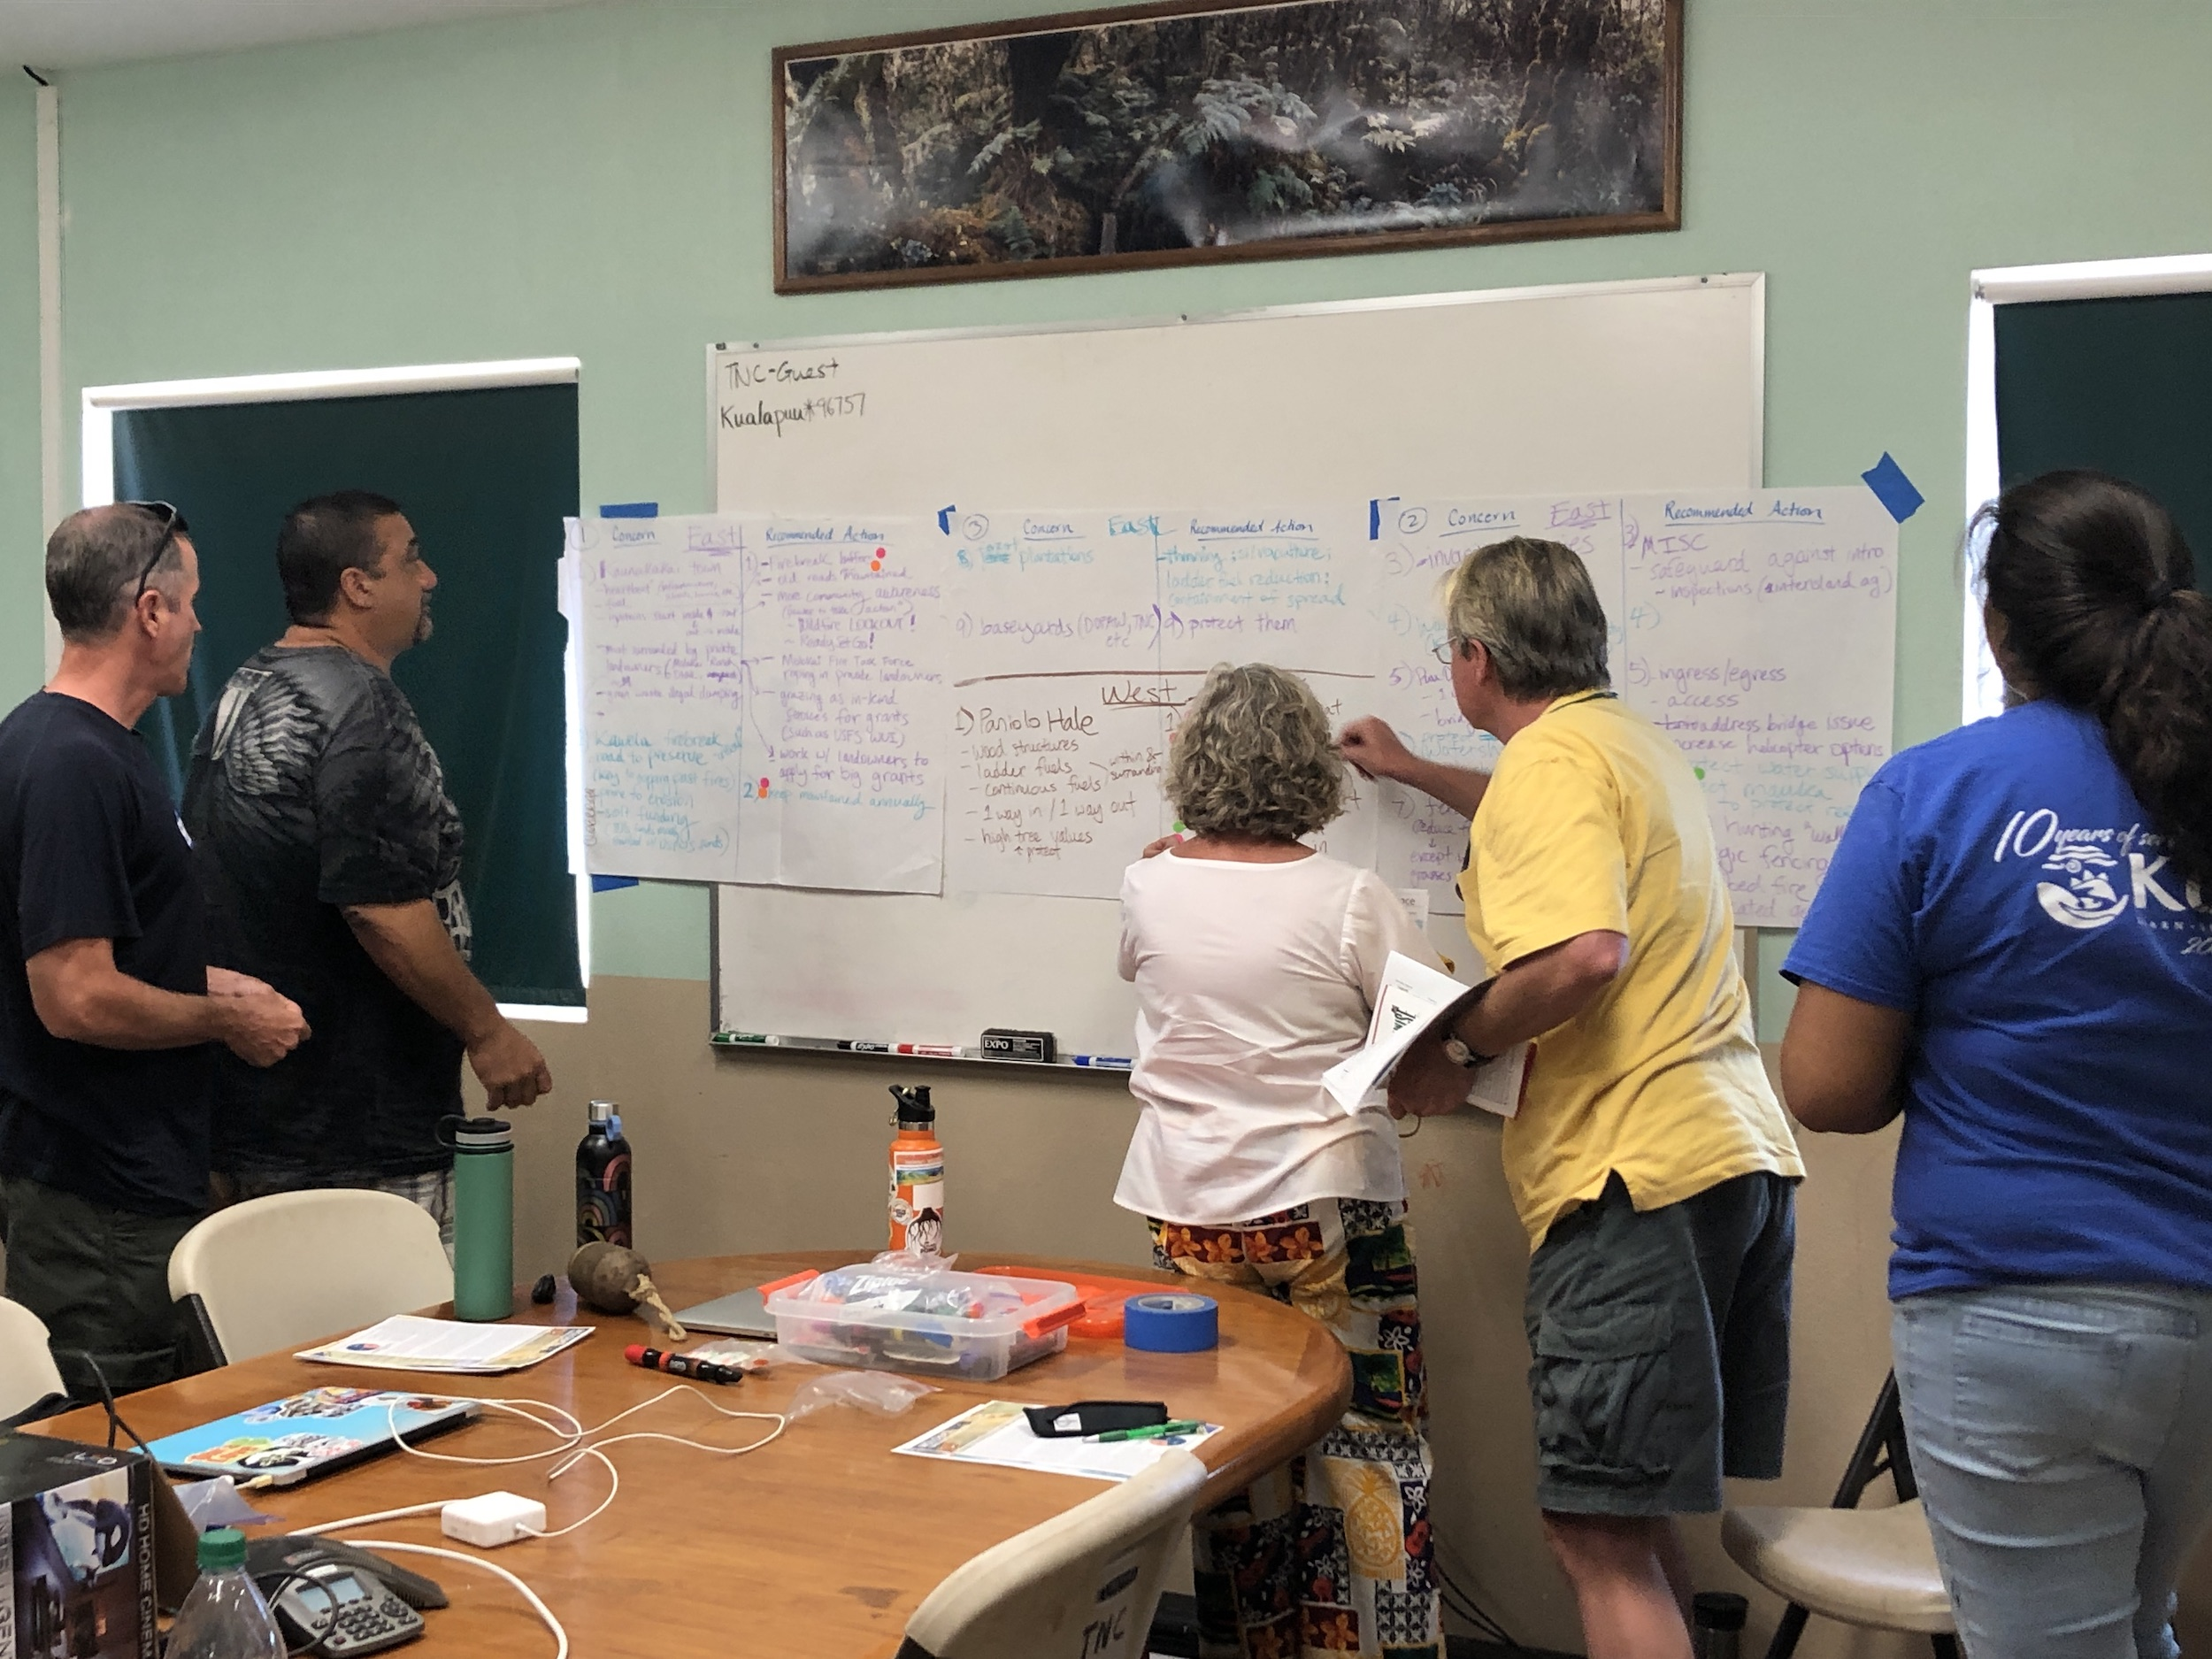 Molokai Vegetative Fuels Management Collaborative Action Planning and Mapping Workshop_4_2_2019_23.JPG